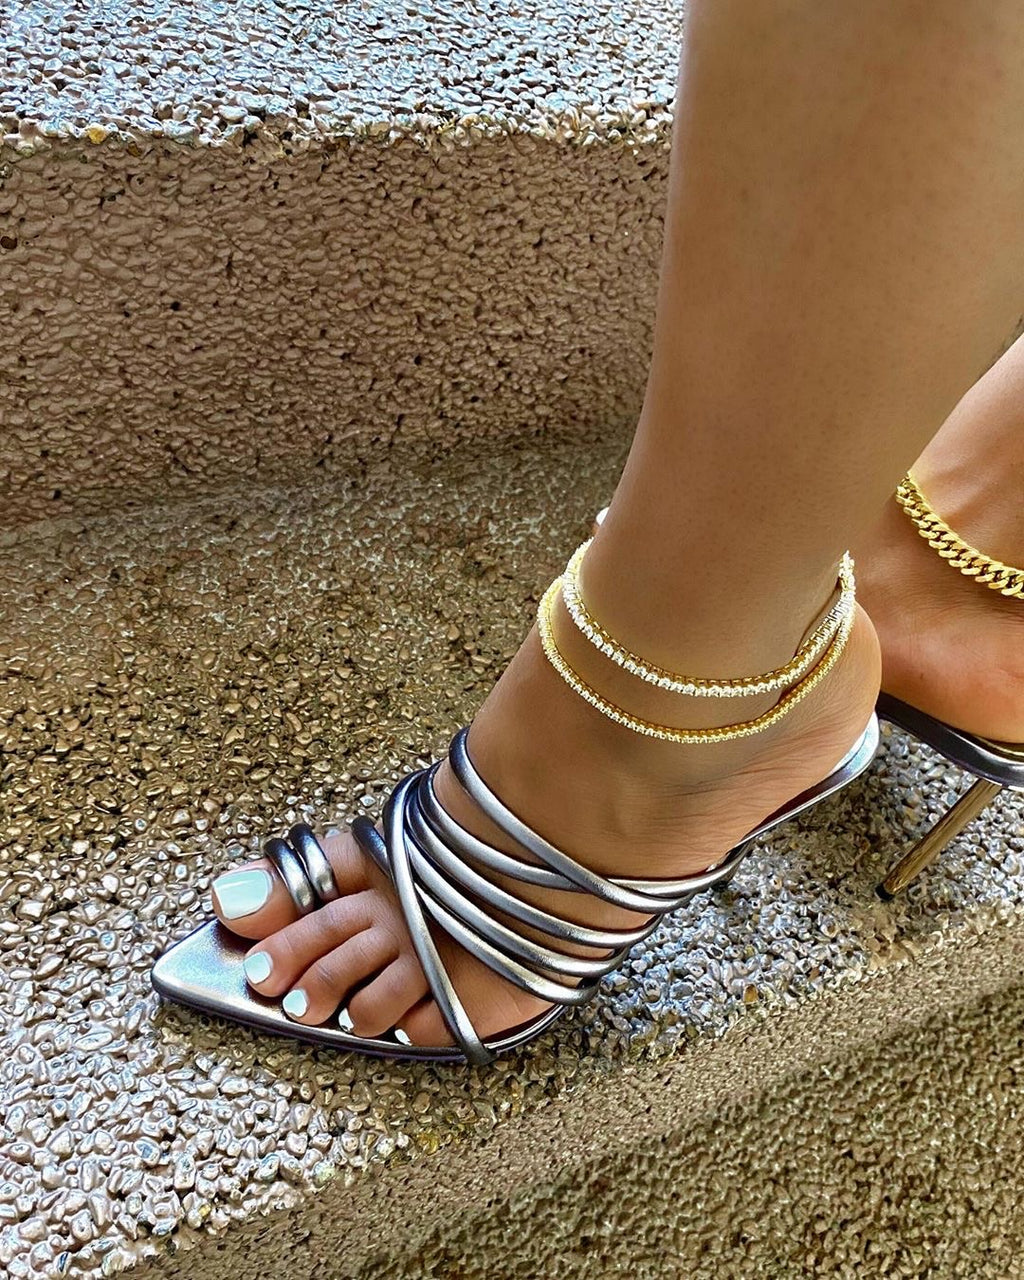 SybG by Sybille Guichard Always Strapped Pewter Gray Sandals